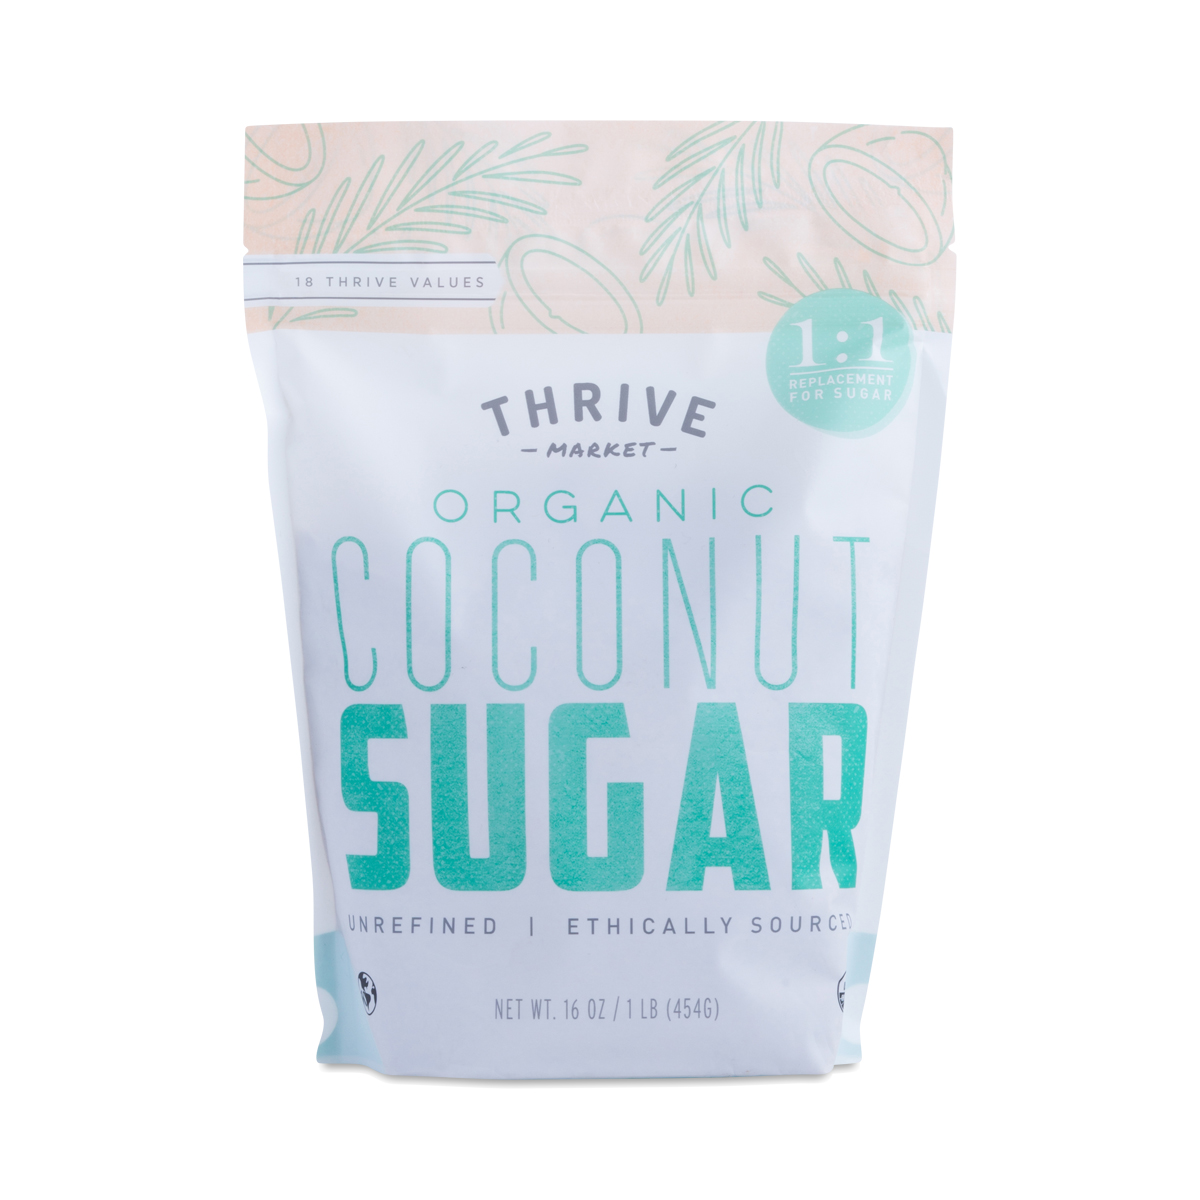 Thrive Market Organic Coconut Sugar 16 oz bag